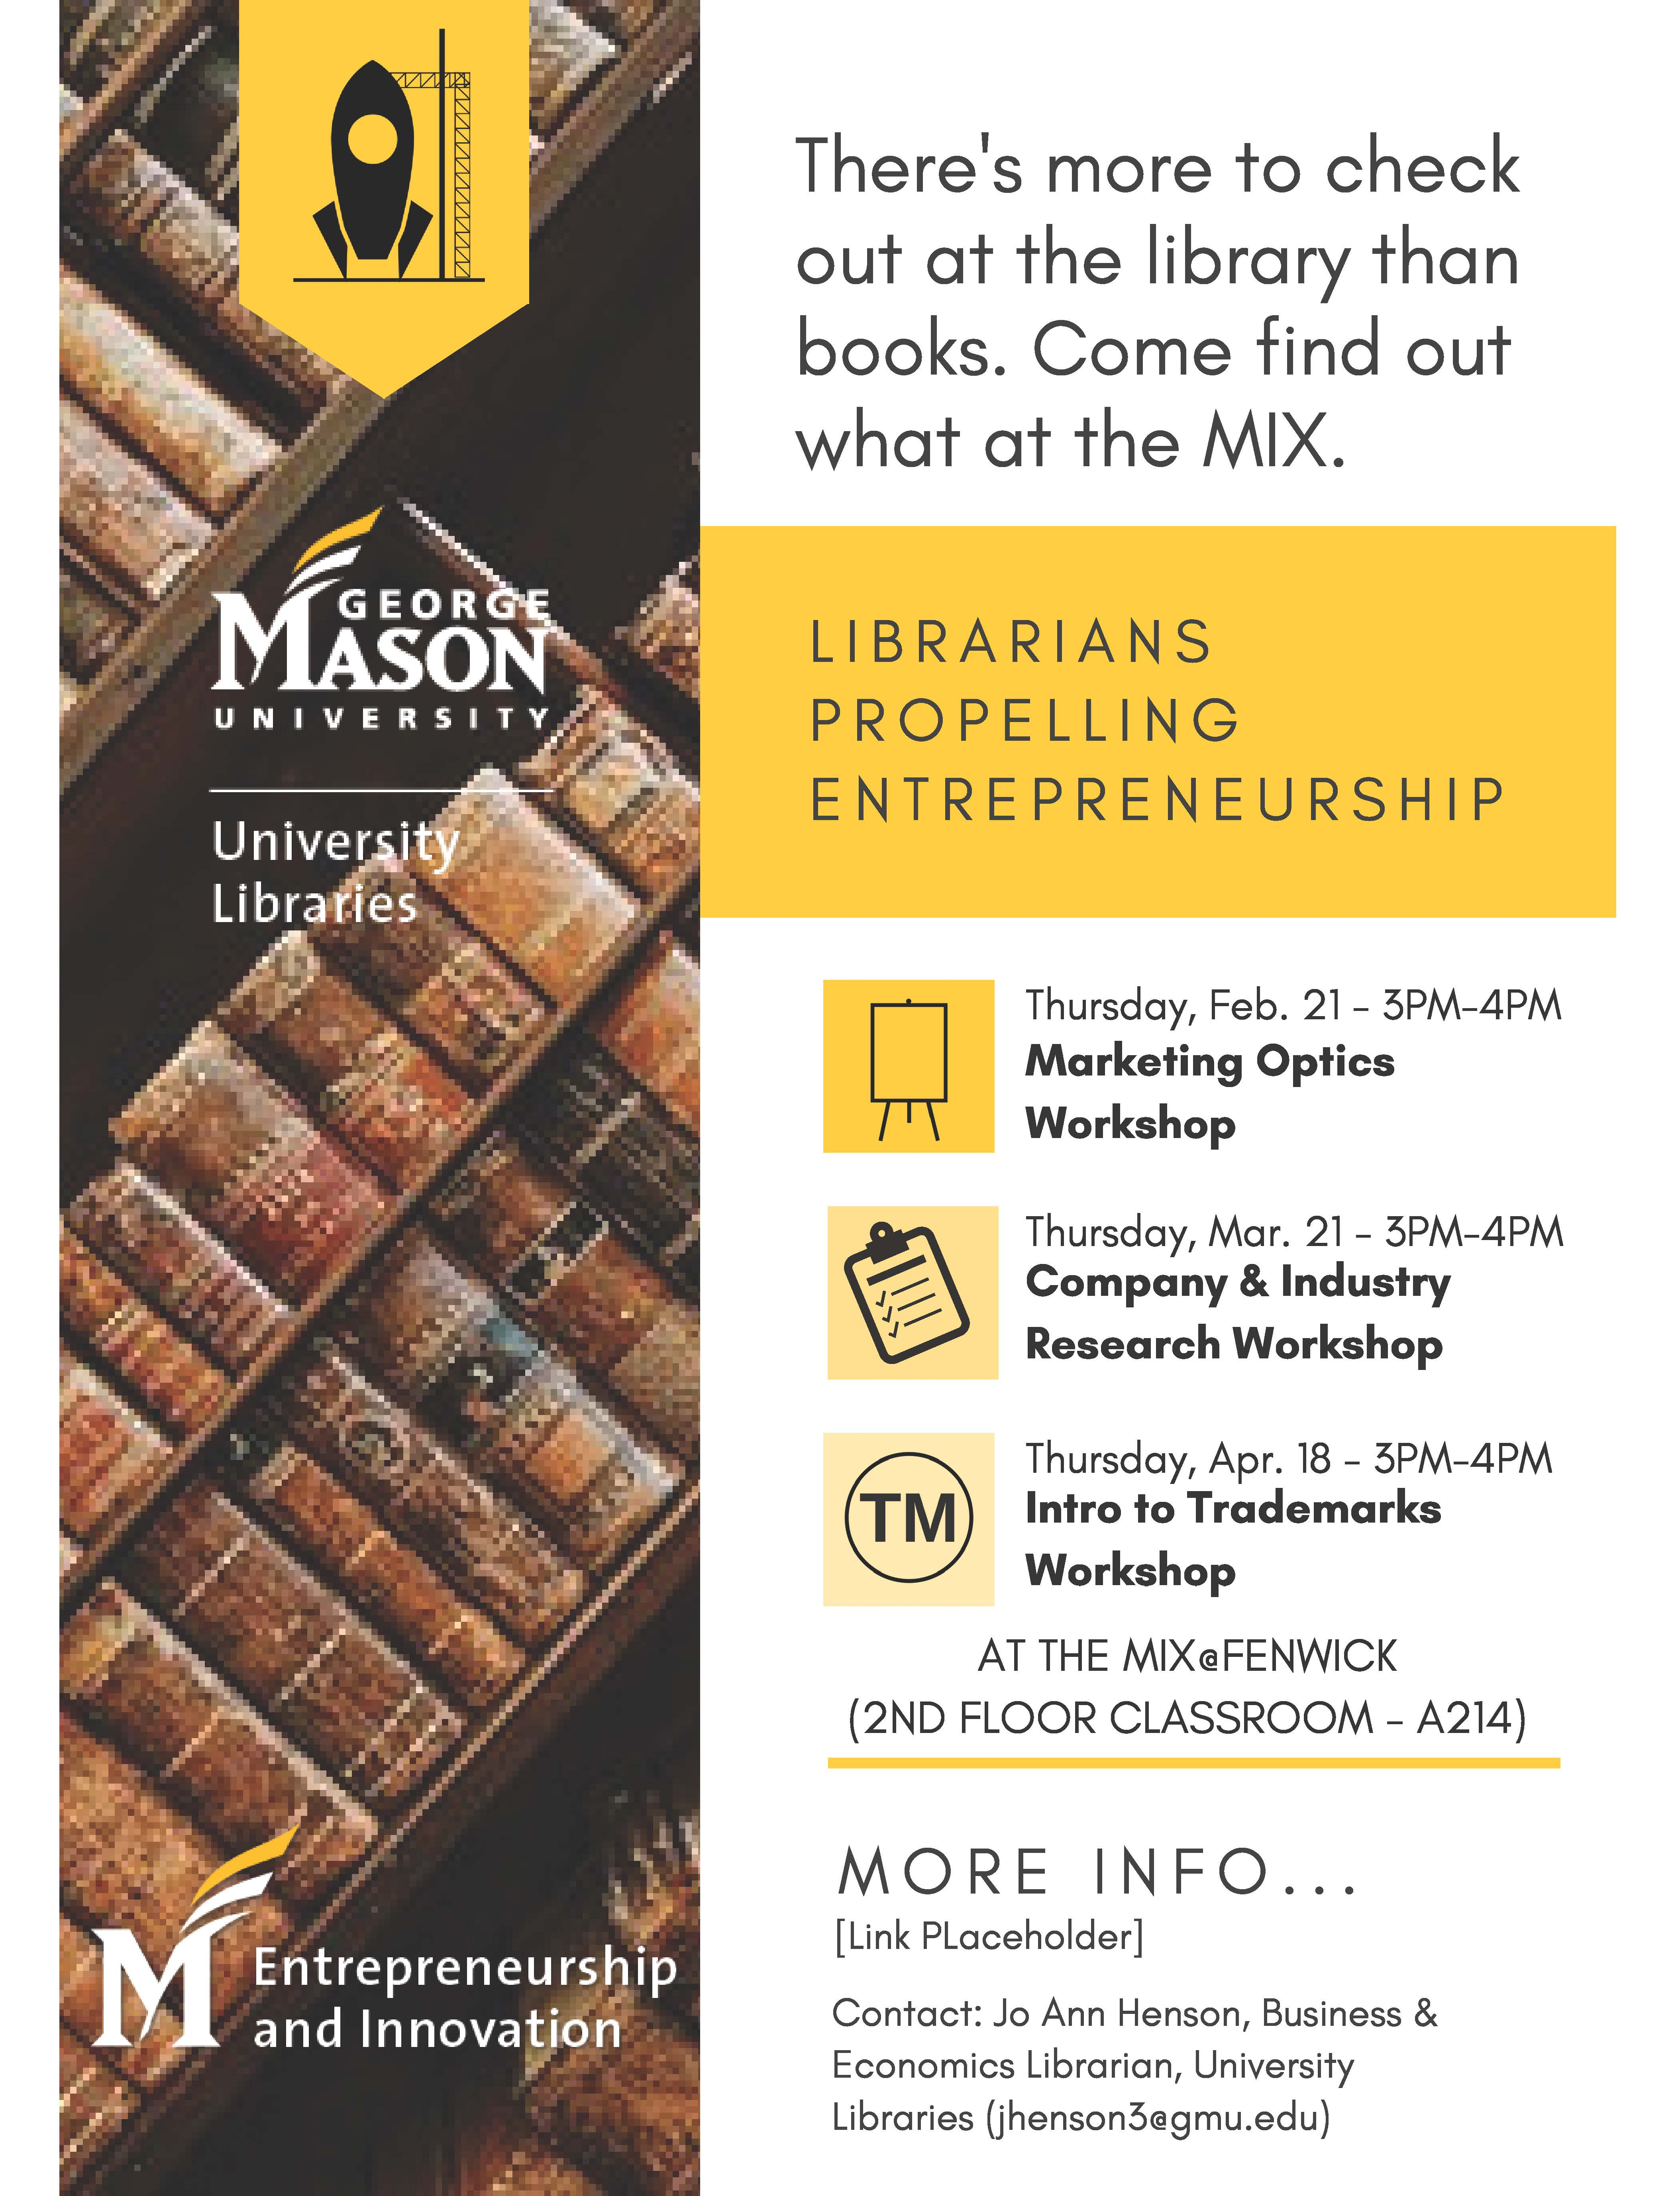 Library resources and skills for Entrepreneurship- At The MIX@FENWICK (2nd floor classroom, A214)